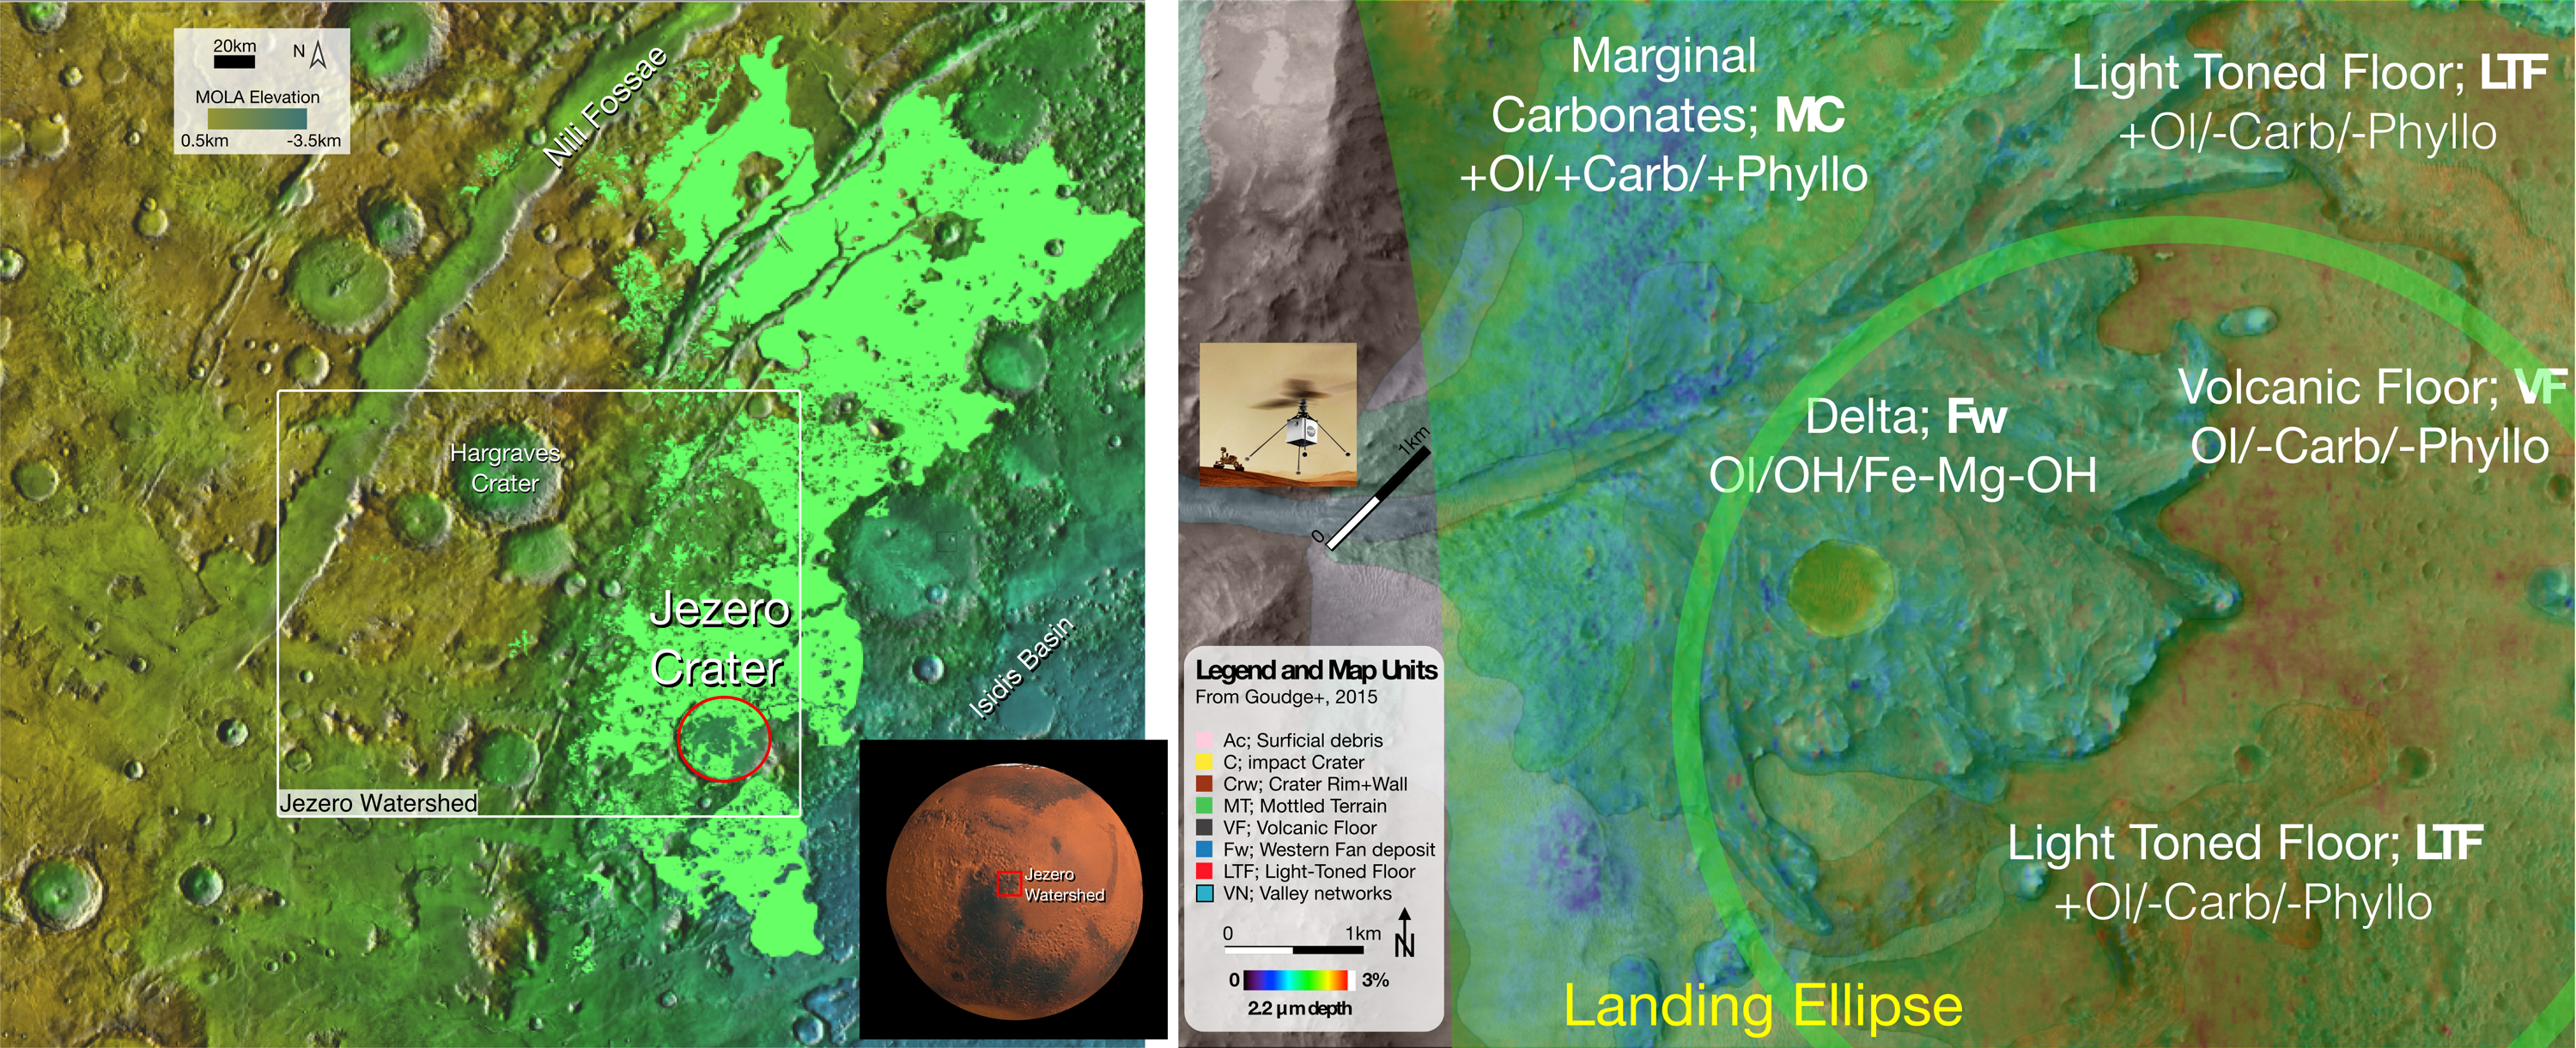 Maps of Mars's surface near Jezero Crater showing local mineralogy